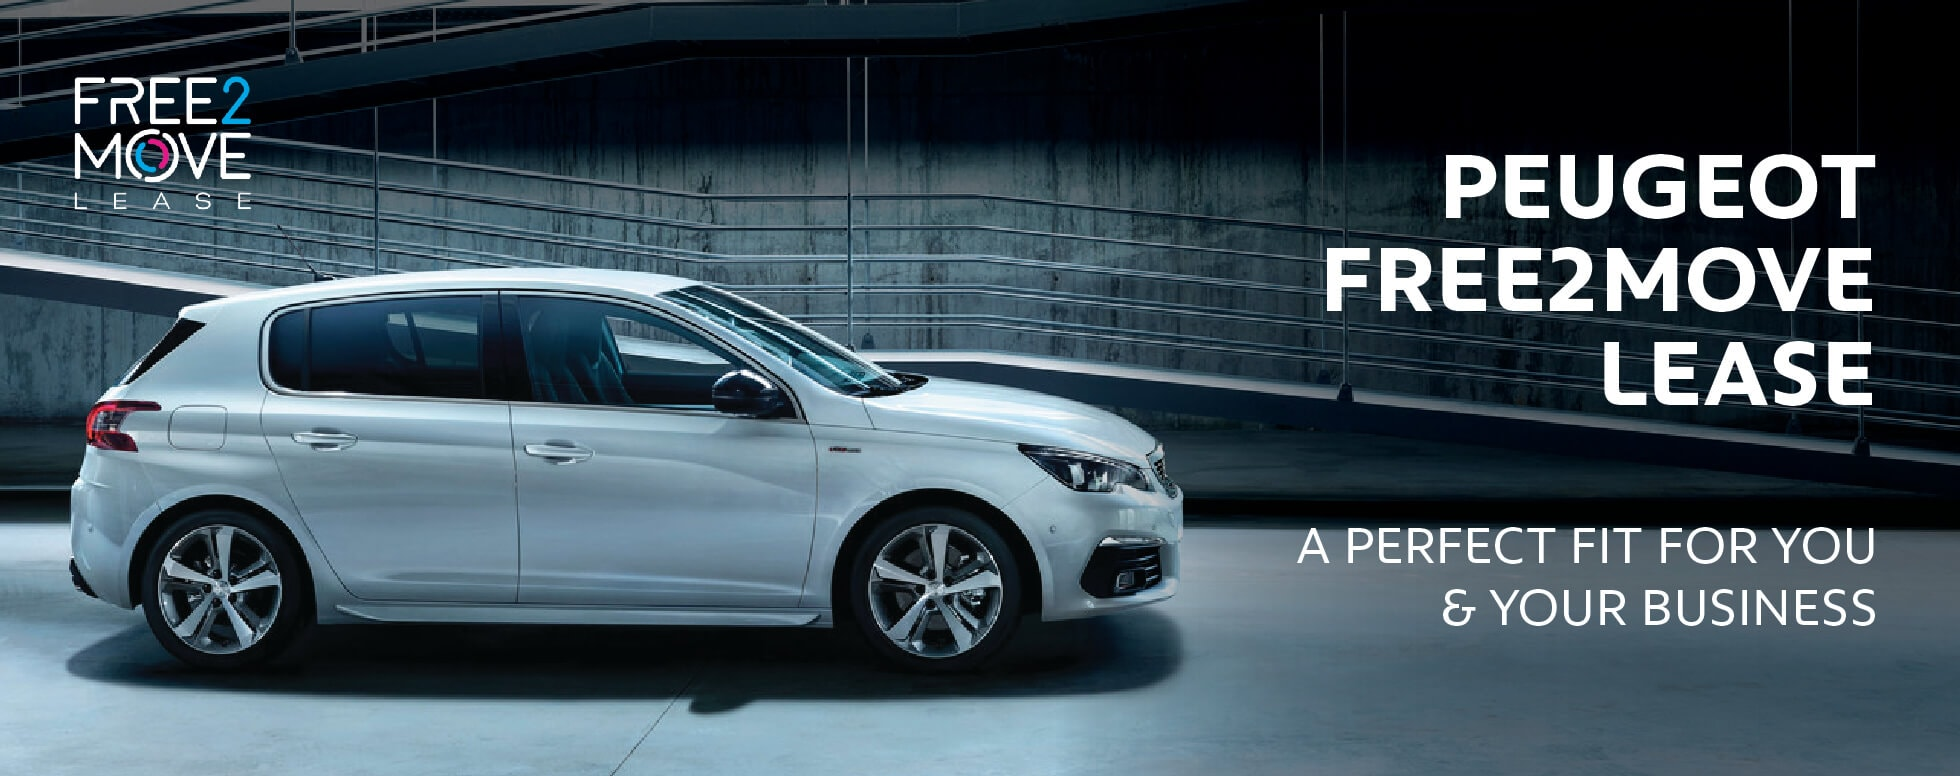 Peugeot Contract Hire